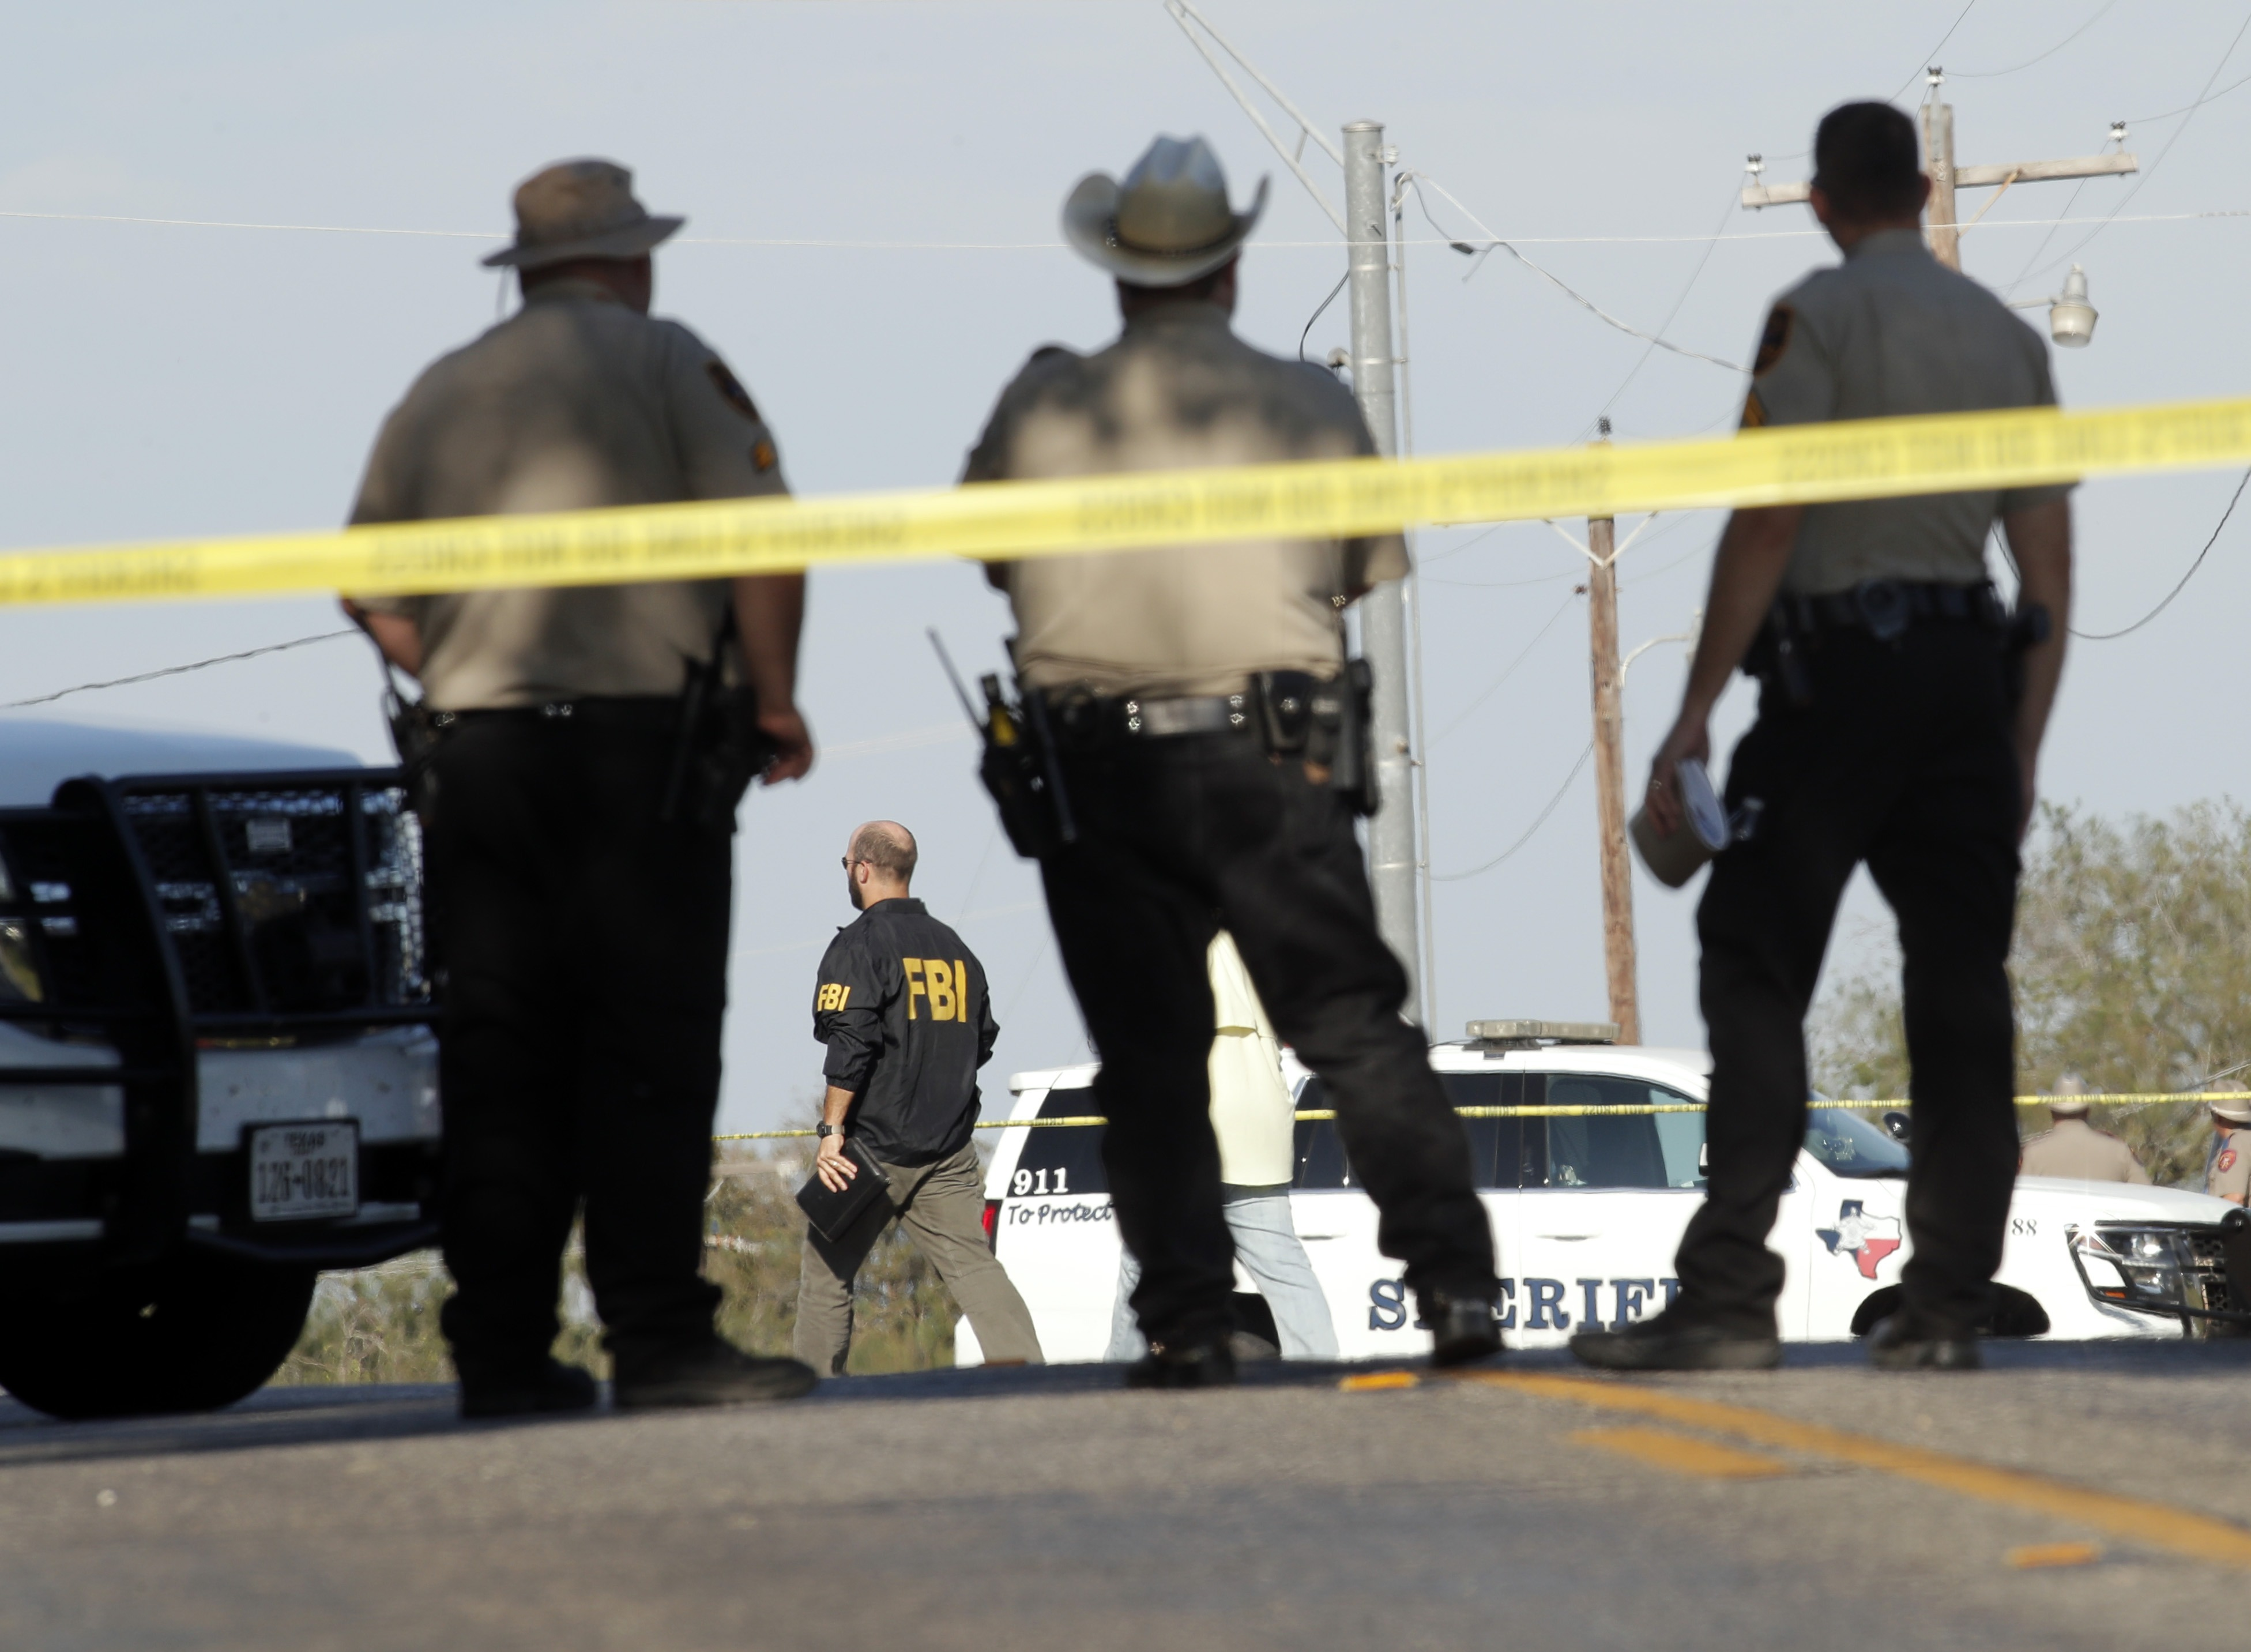 The Sutherland Springs shooter has been identified as Devin Kelley, and here's what we know